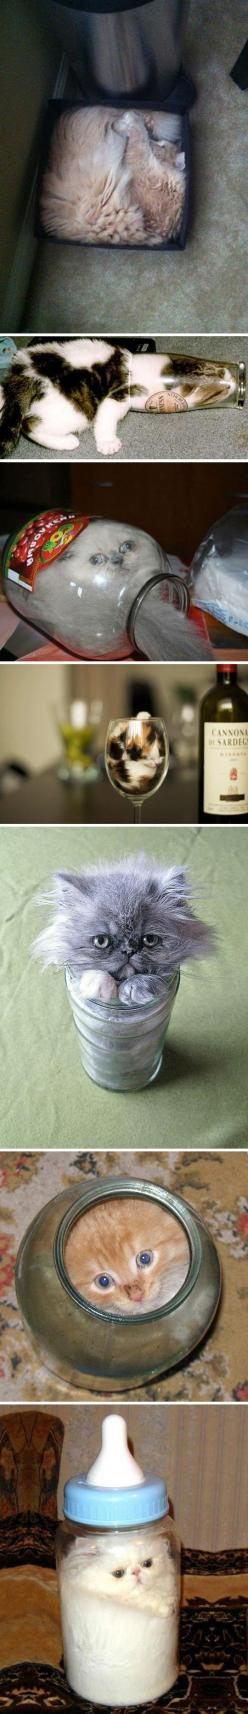 Why cats are liquids // funny pictures - funny photos - funny images - funny pics - funny quotes - #lol #humor #funnypictures: Funny Pictures, Funny Cats, Adorable Liquid, Funny Photos, Funny Animal, Prove Cats, Liquid Cats, Stuck Cats, Cat Lady